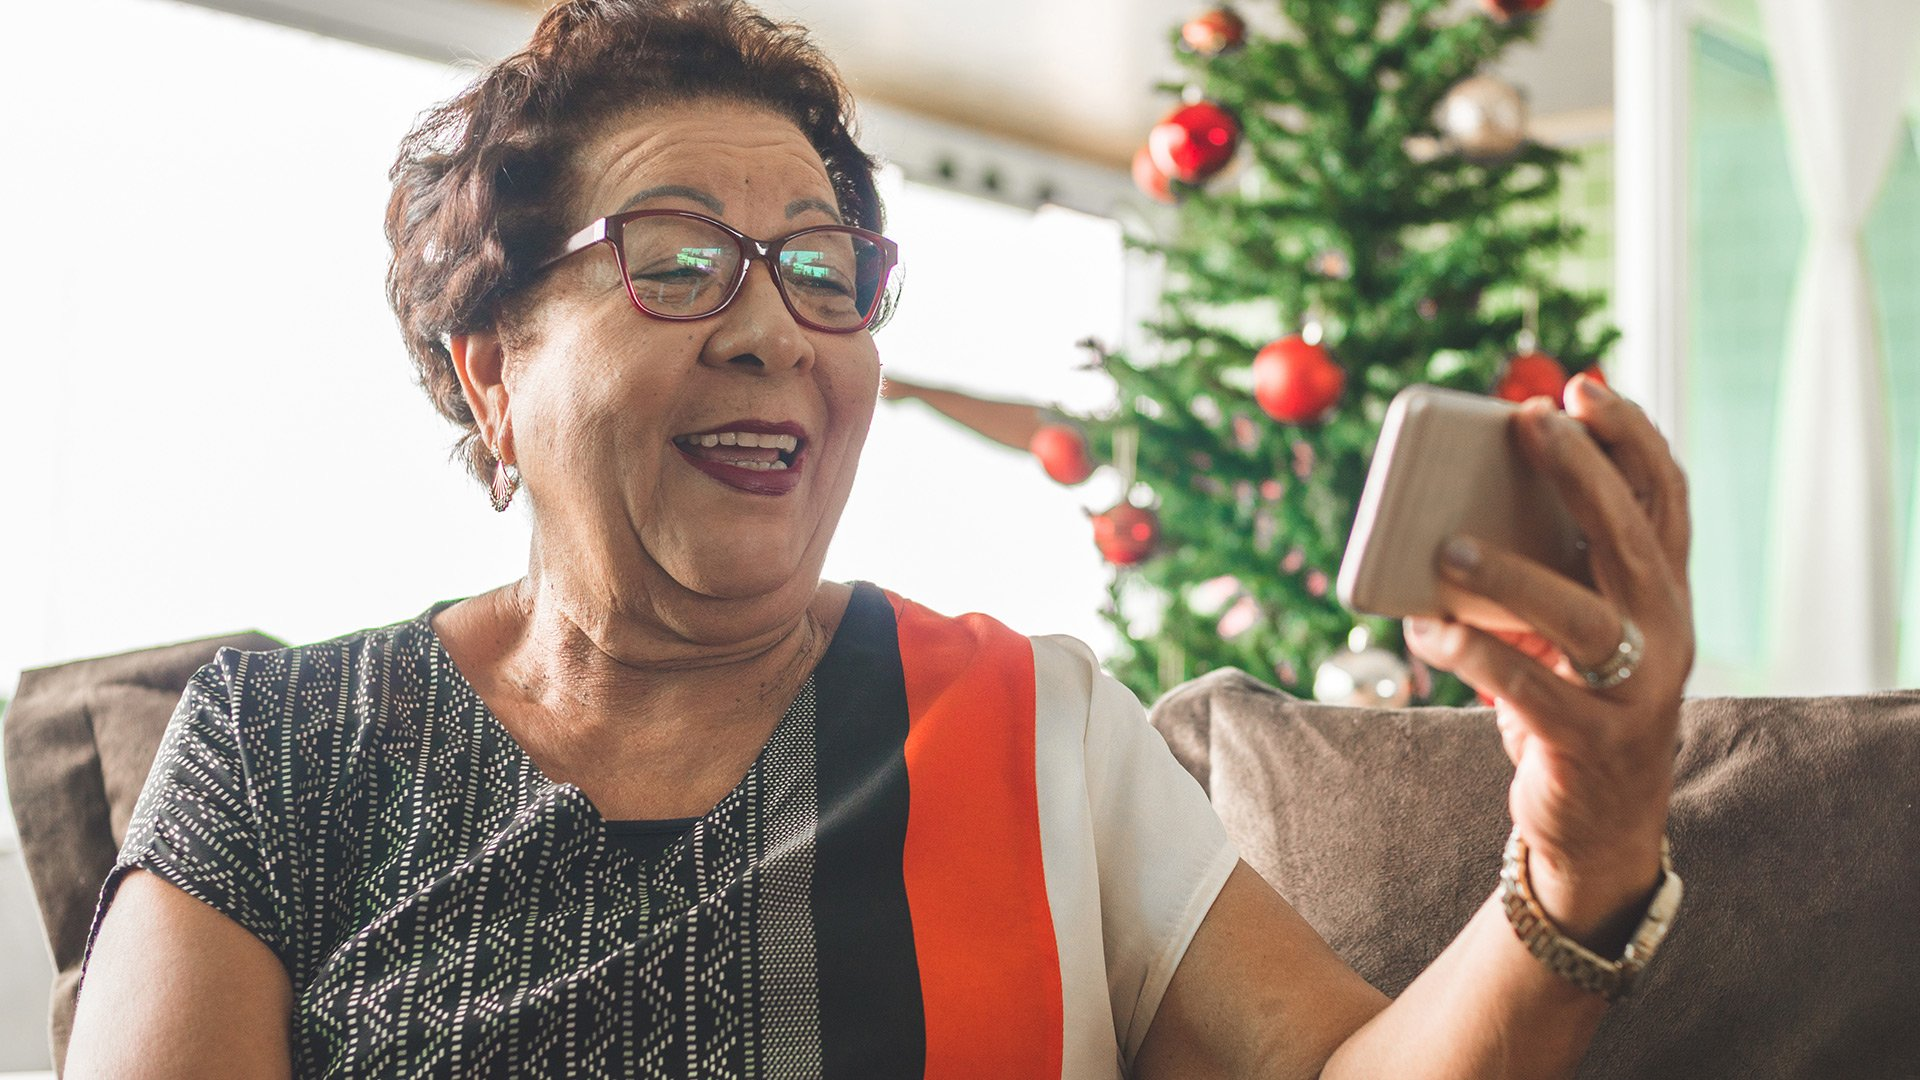 authentic-connection-christmas-evangelism